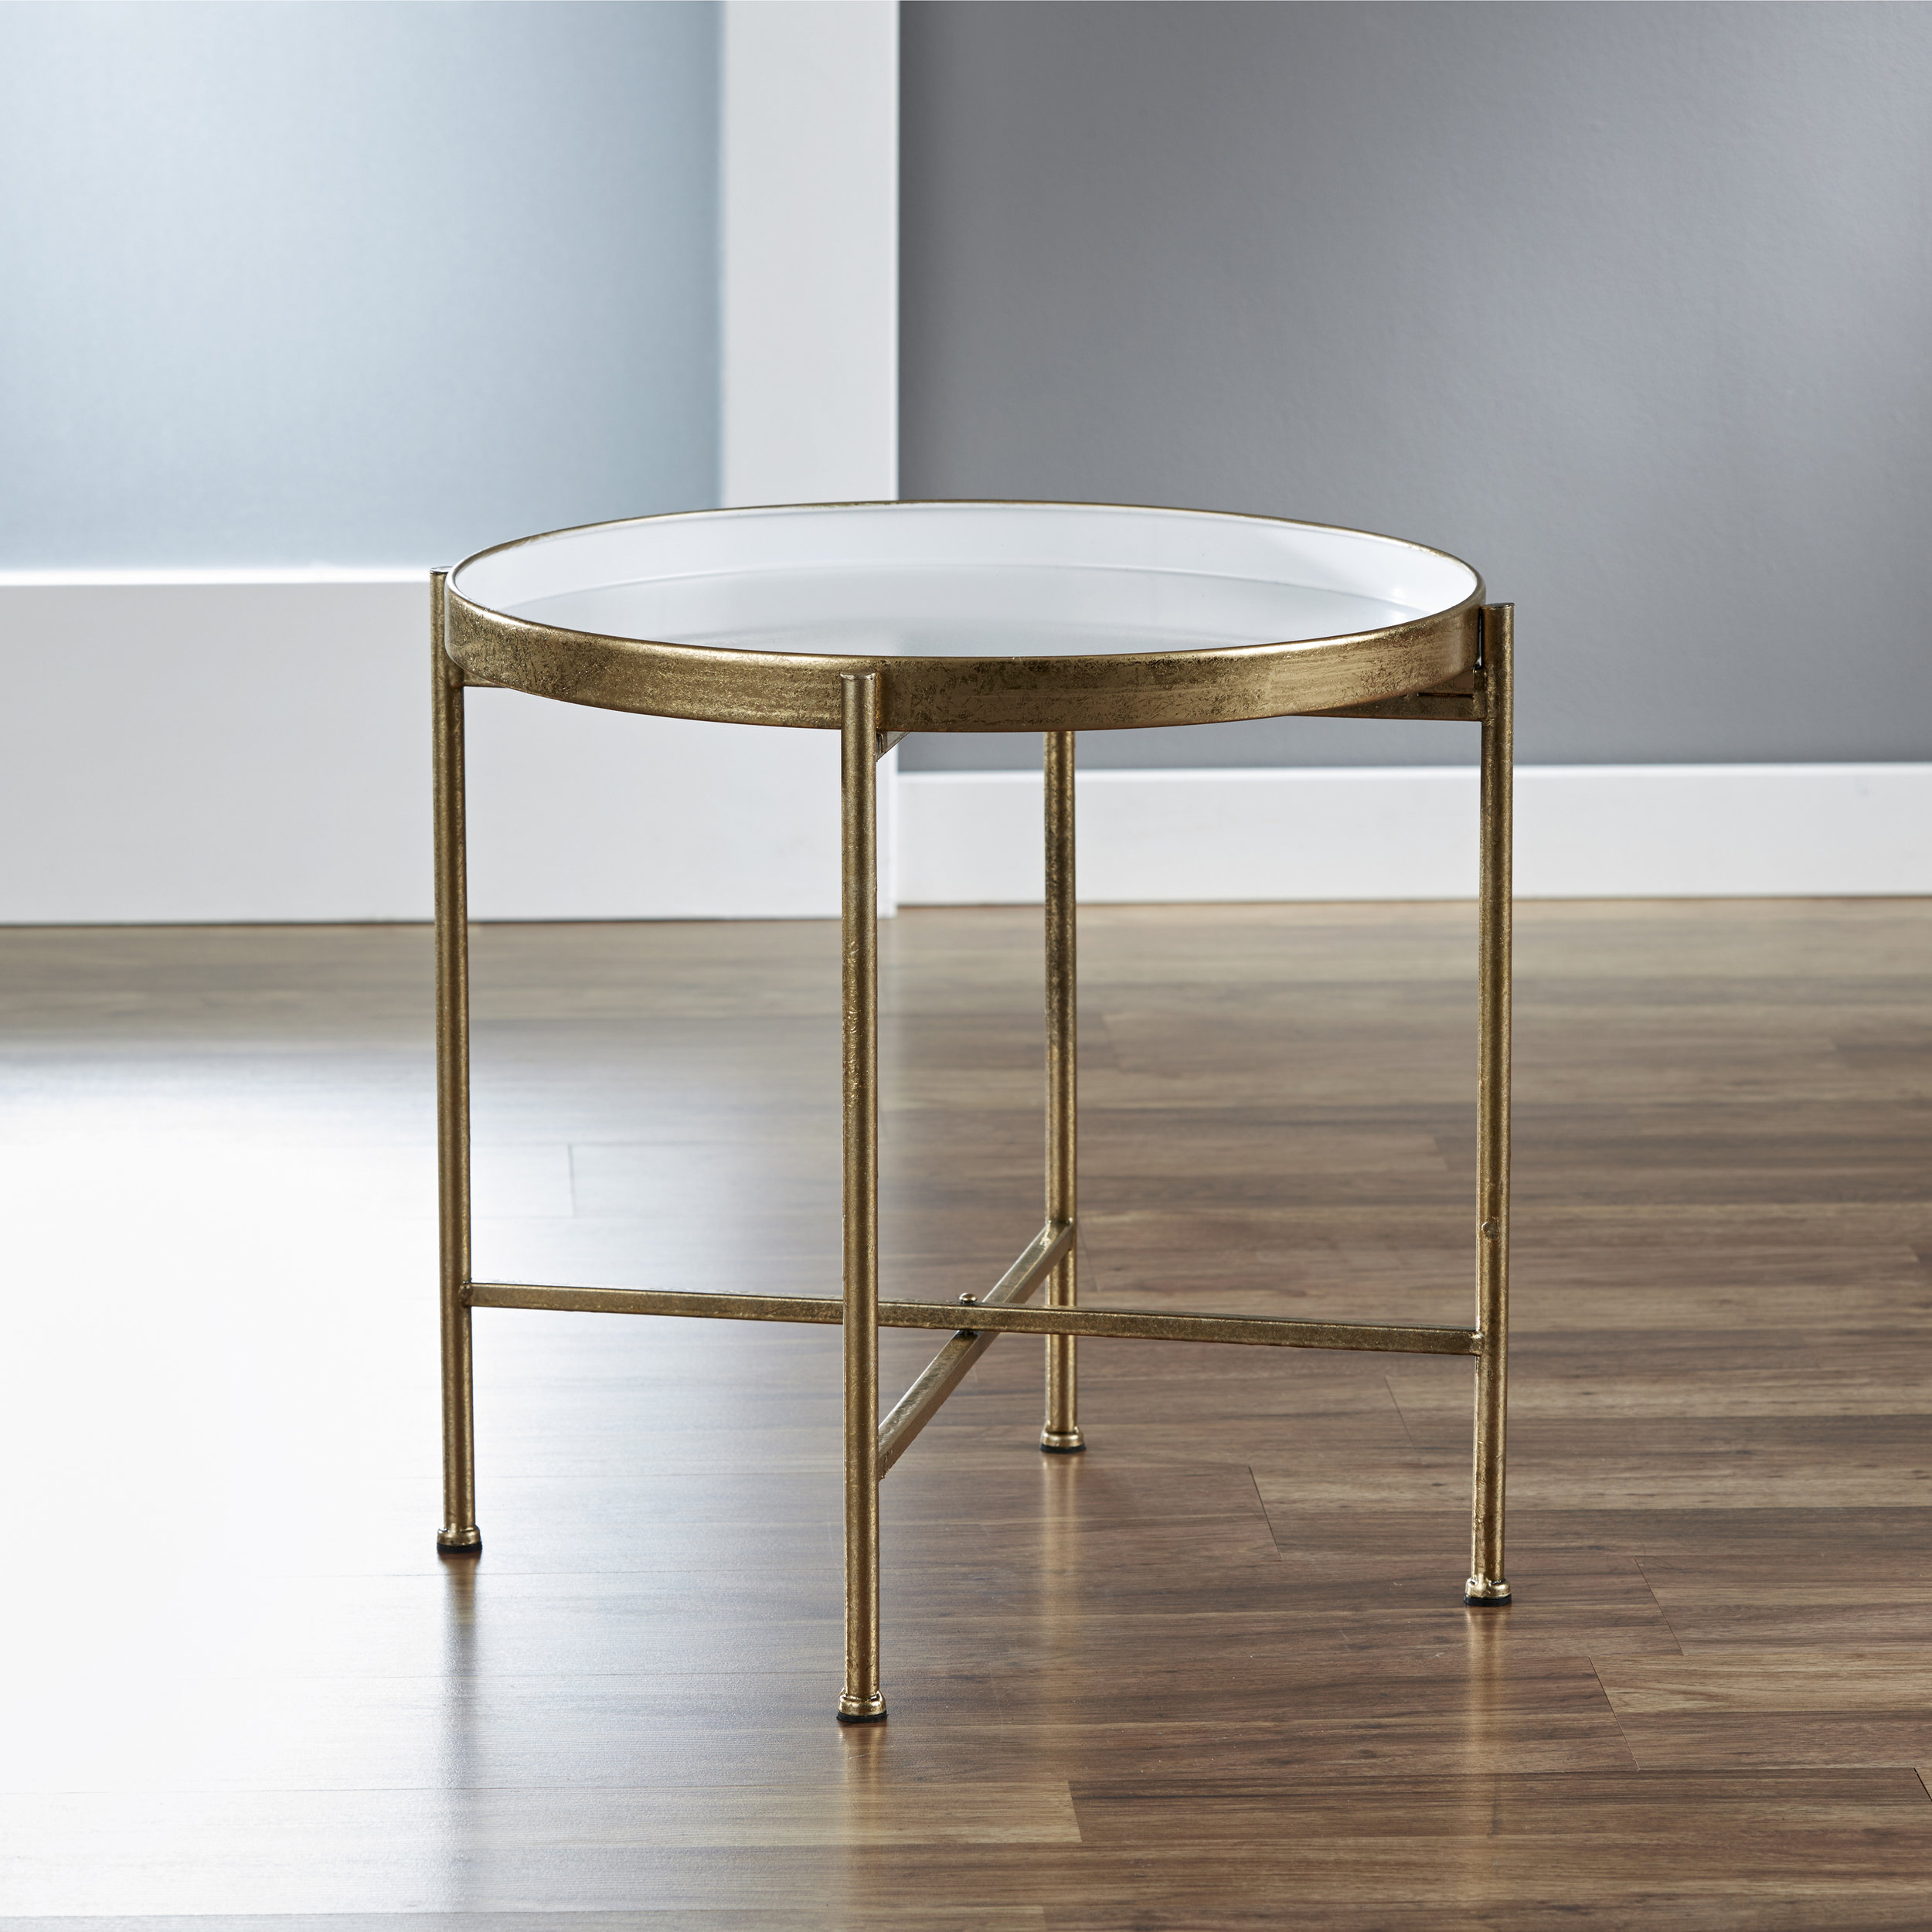 Large Gild Pop Up Tray Table in White